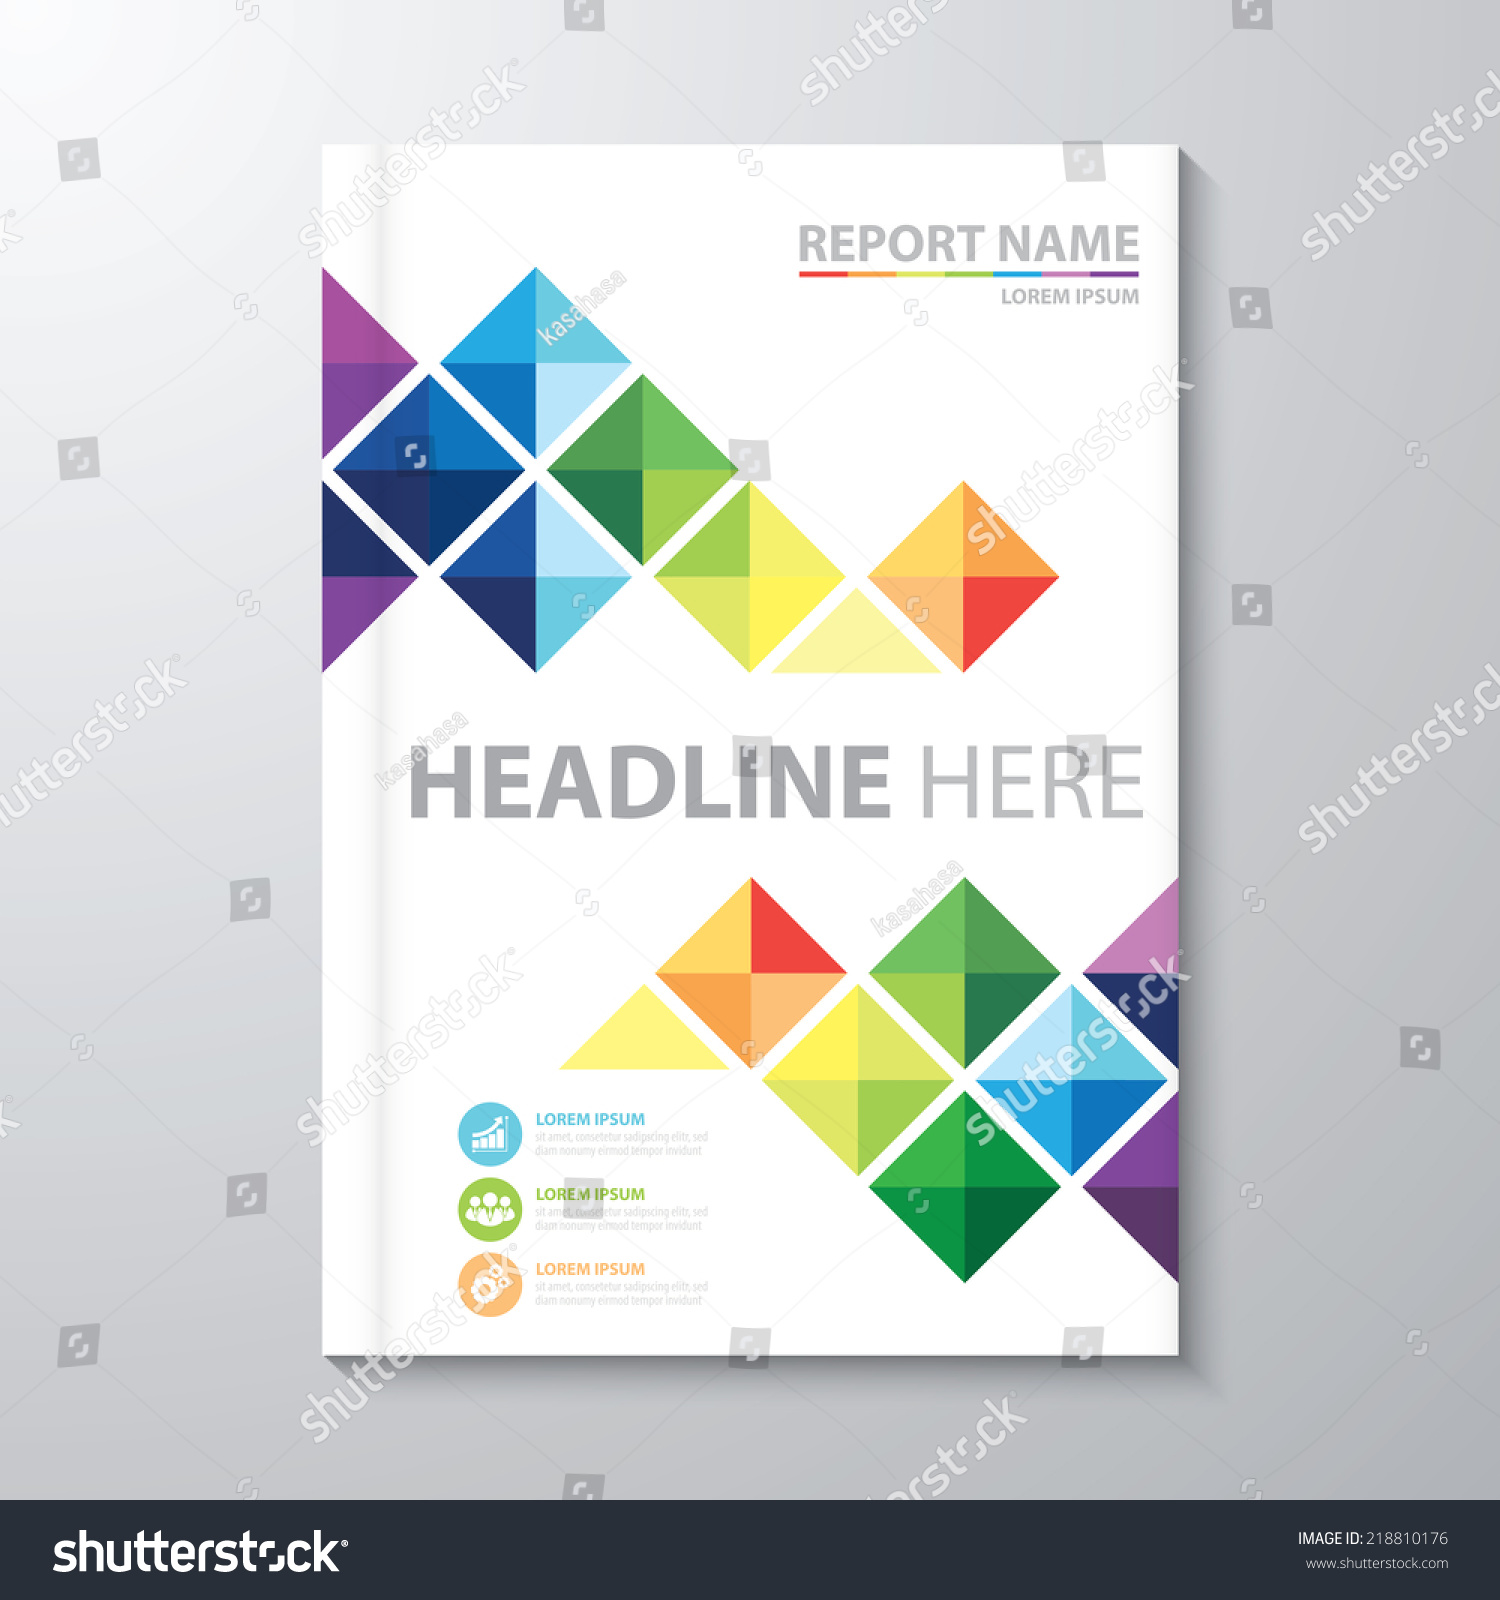 abstract colorful triangle background cover design stock vector abstract colorful triangle background cover design template layout in a4 size for annual report